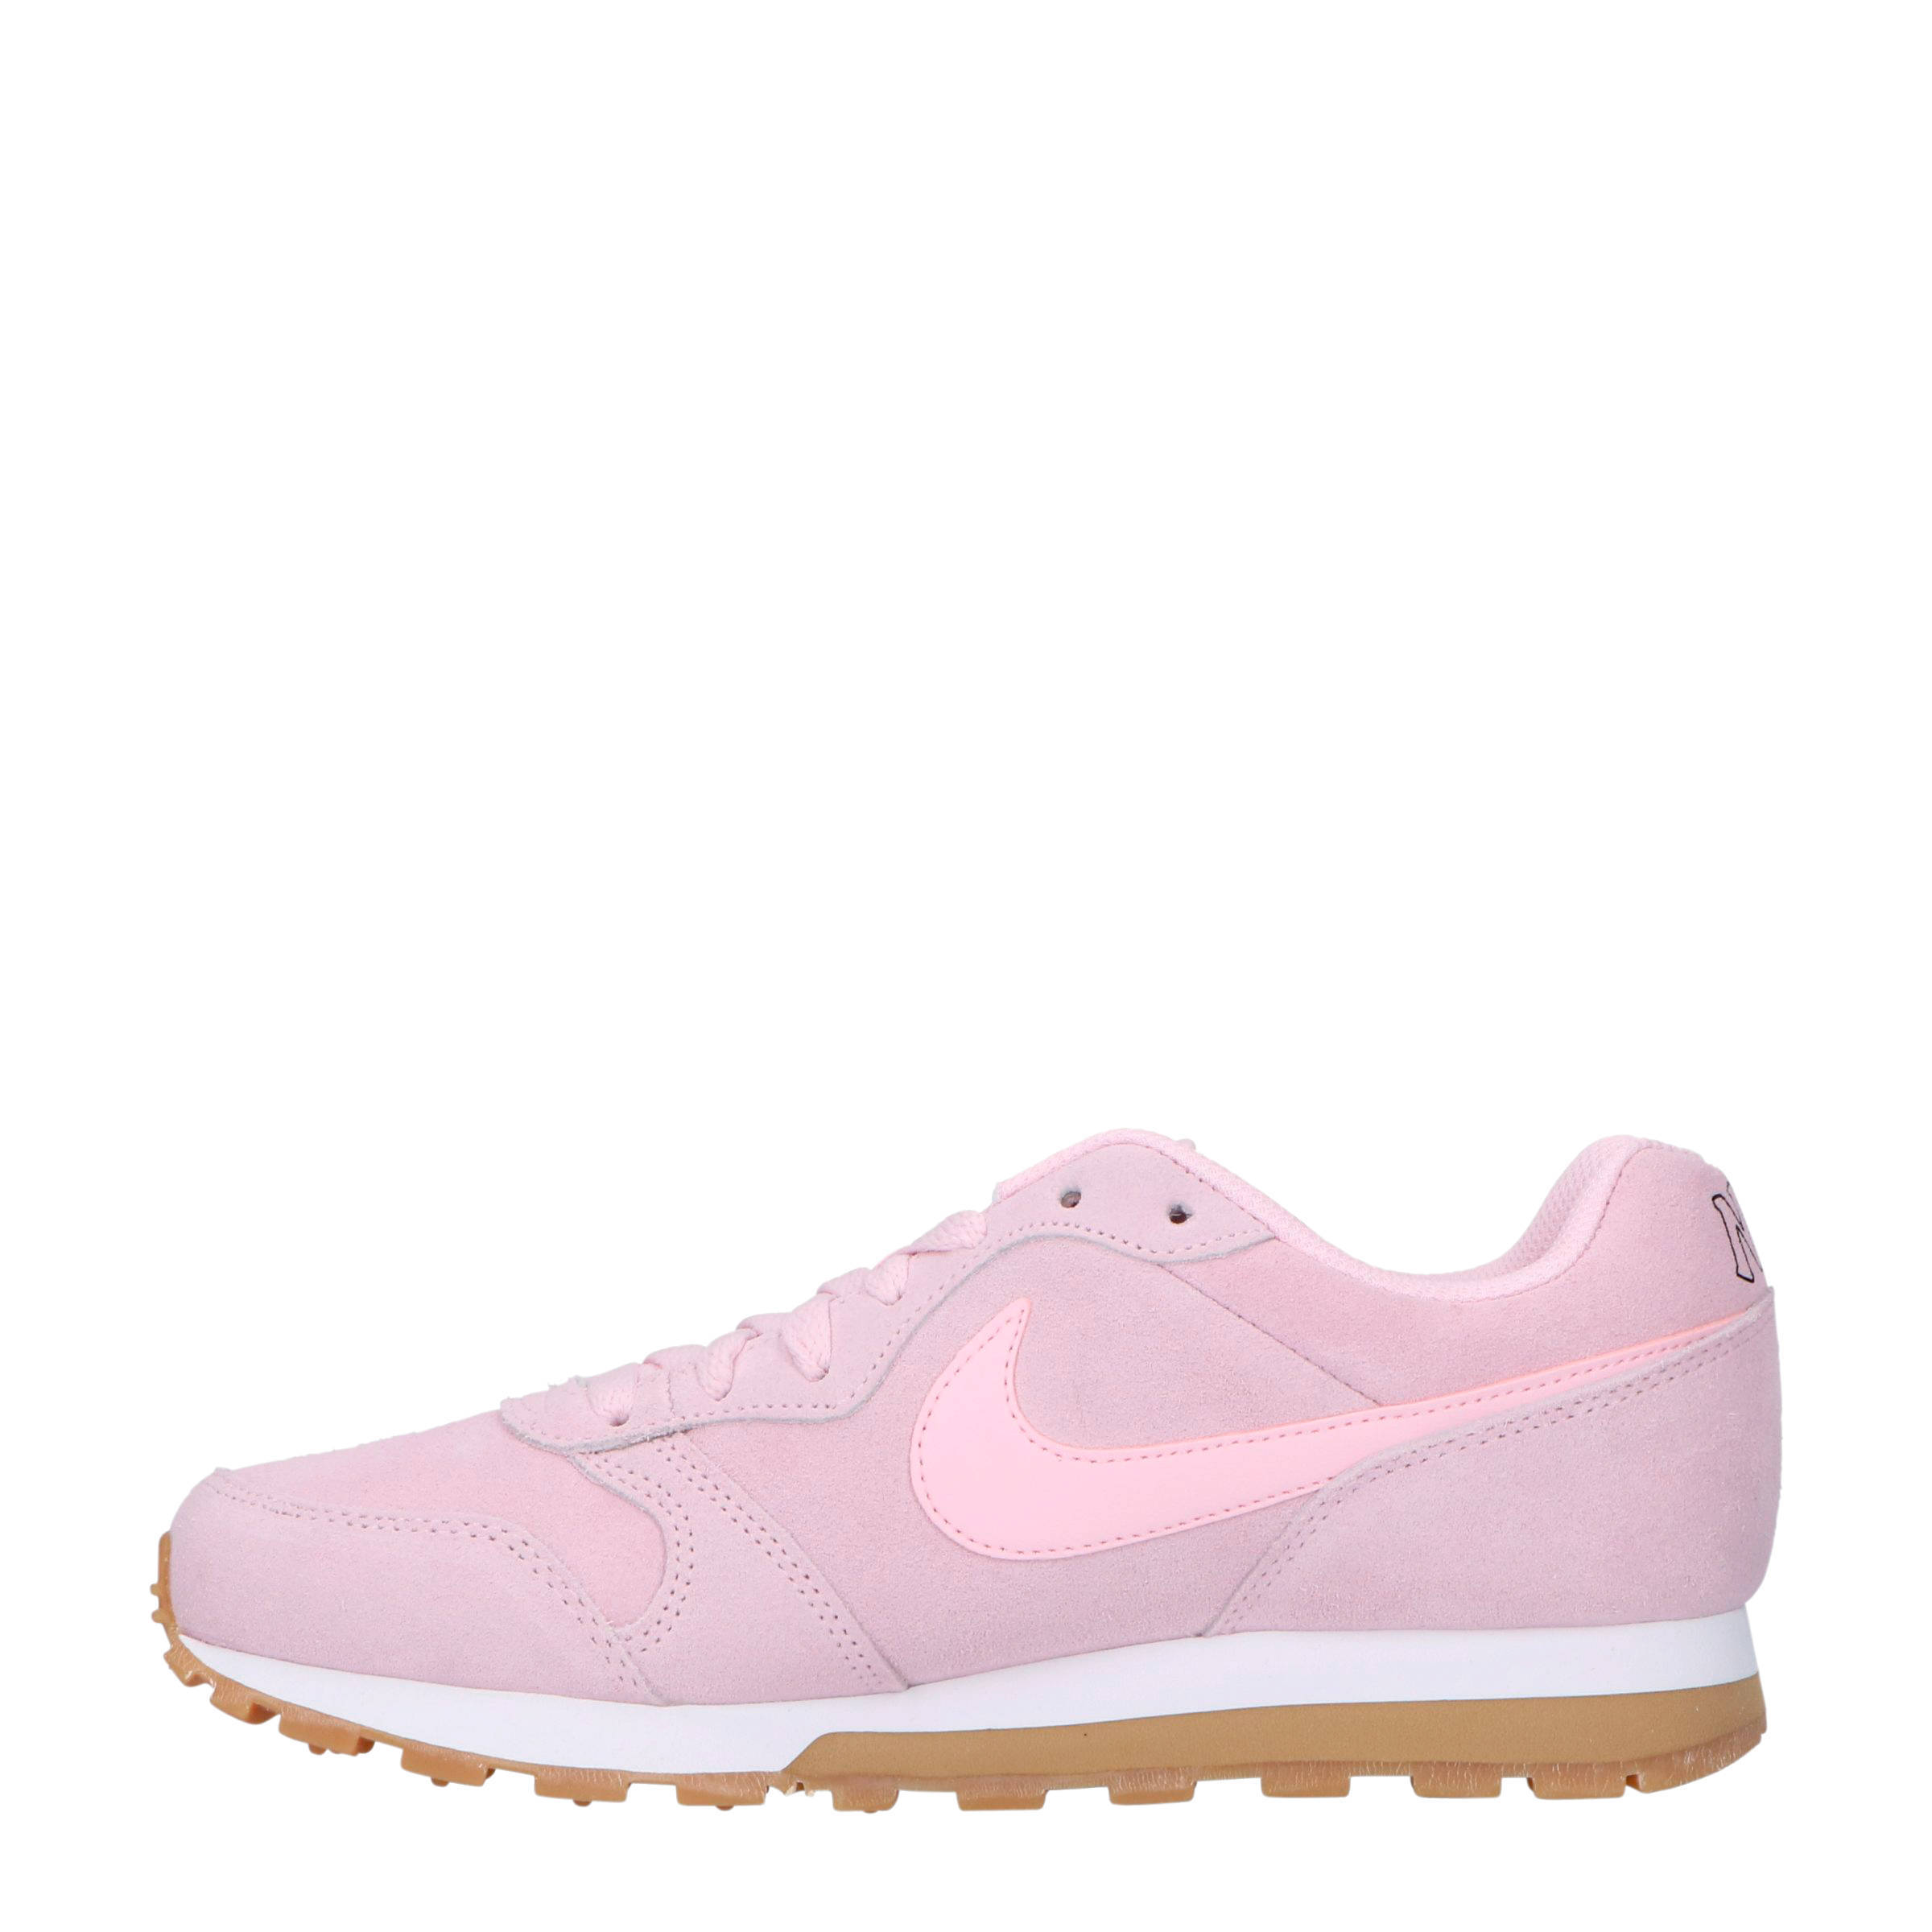 wholesale dealer 8f013 9ec91 nike-md-runner-2-se-sneakers-roze-roze-0826216366576.jpg